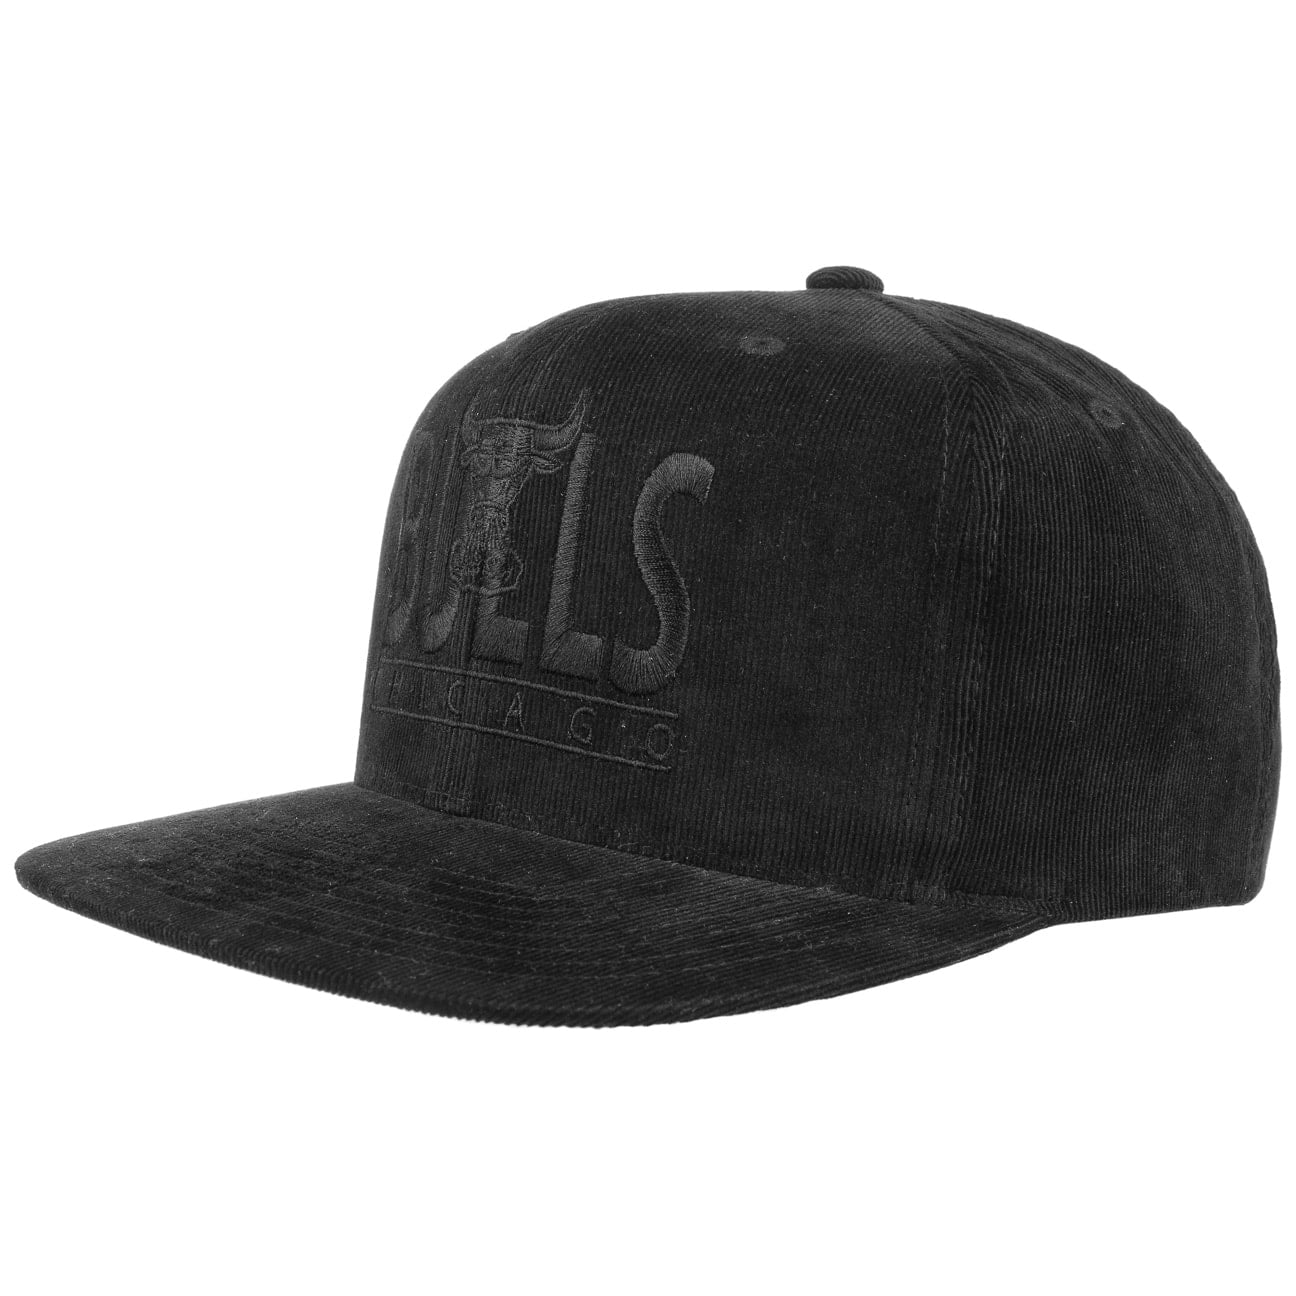 Gorra Corduroy Bulls by Mitchell & Ness  base cap